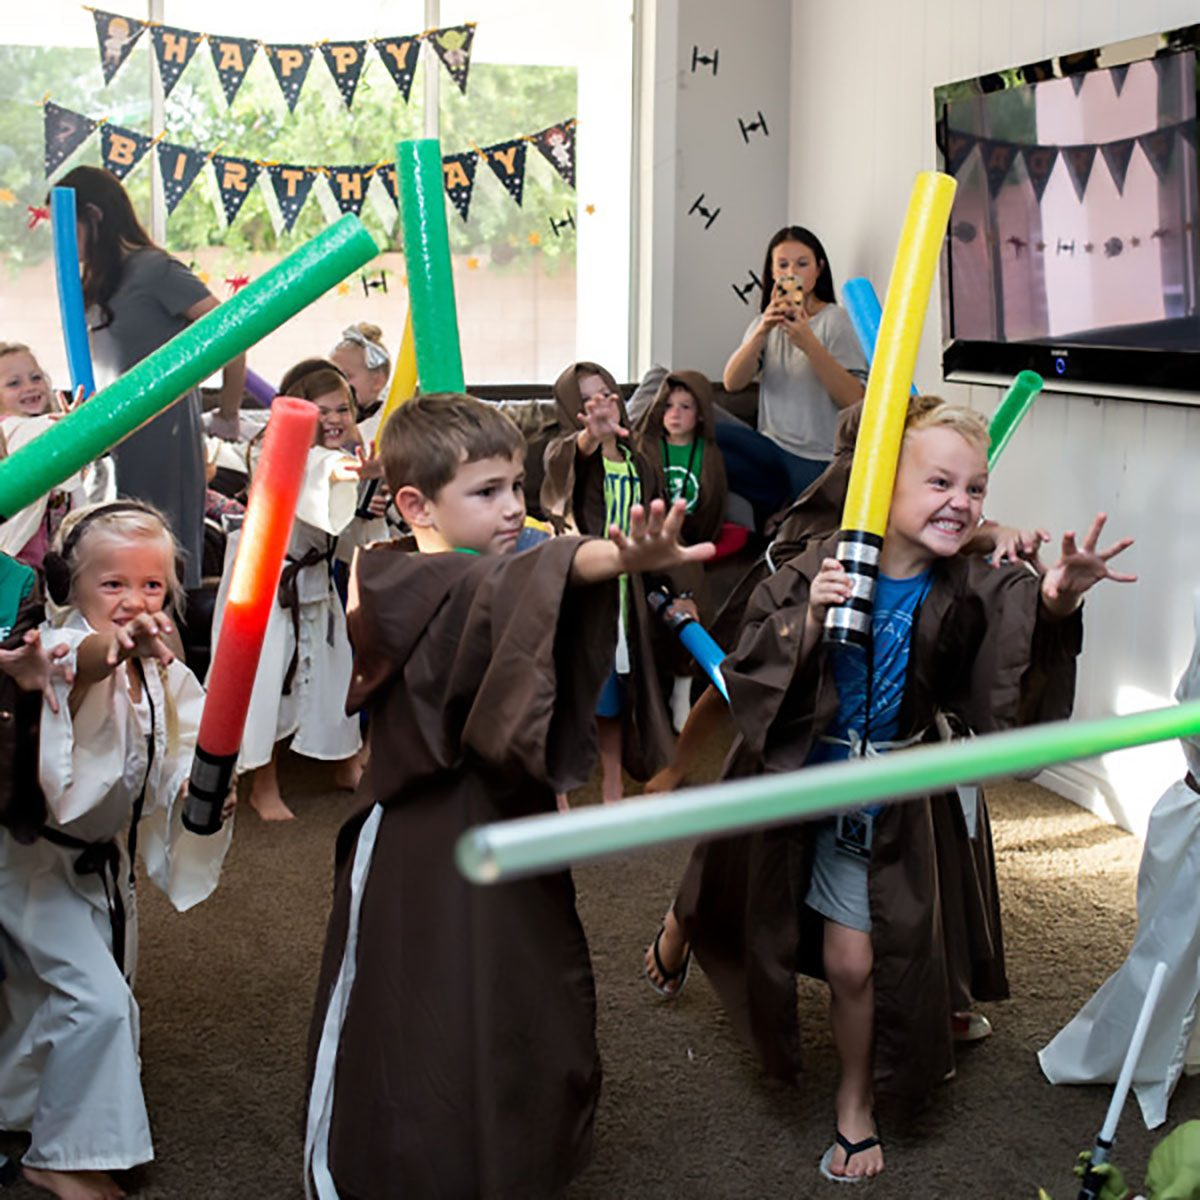 Star Wars Birthday Party lightsaber fight idea